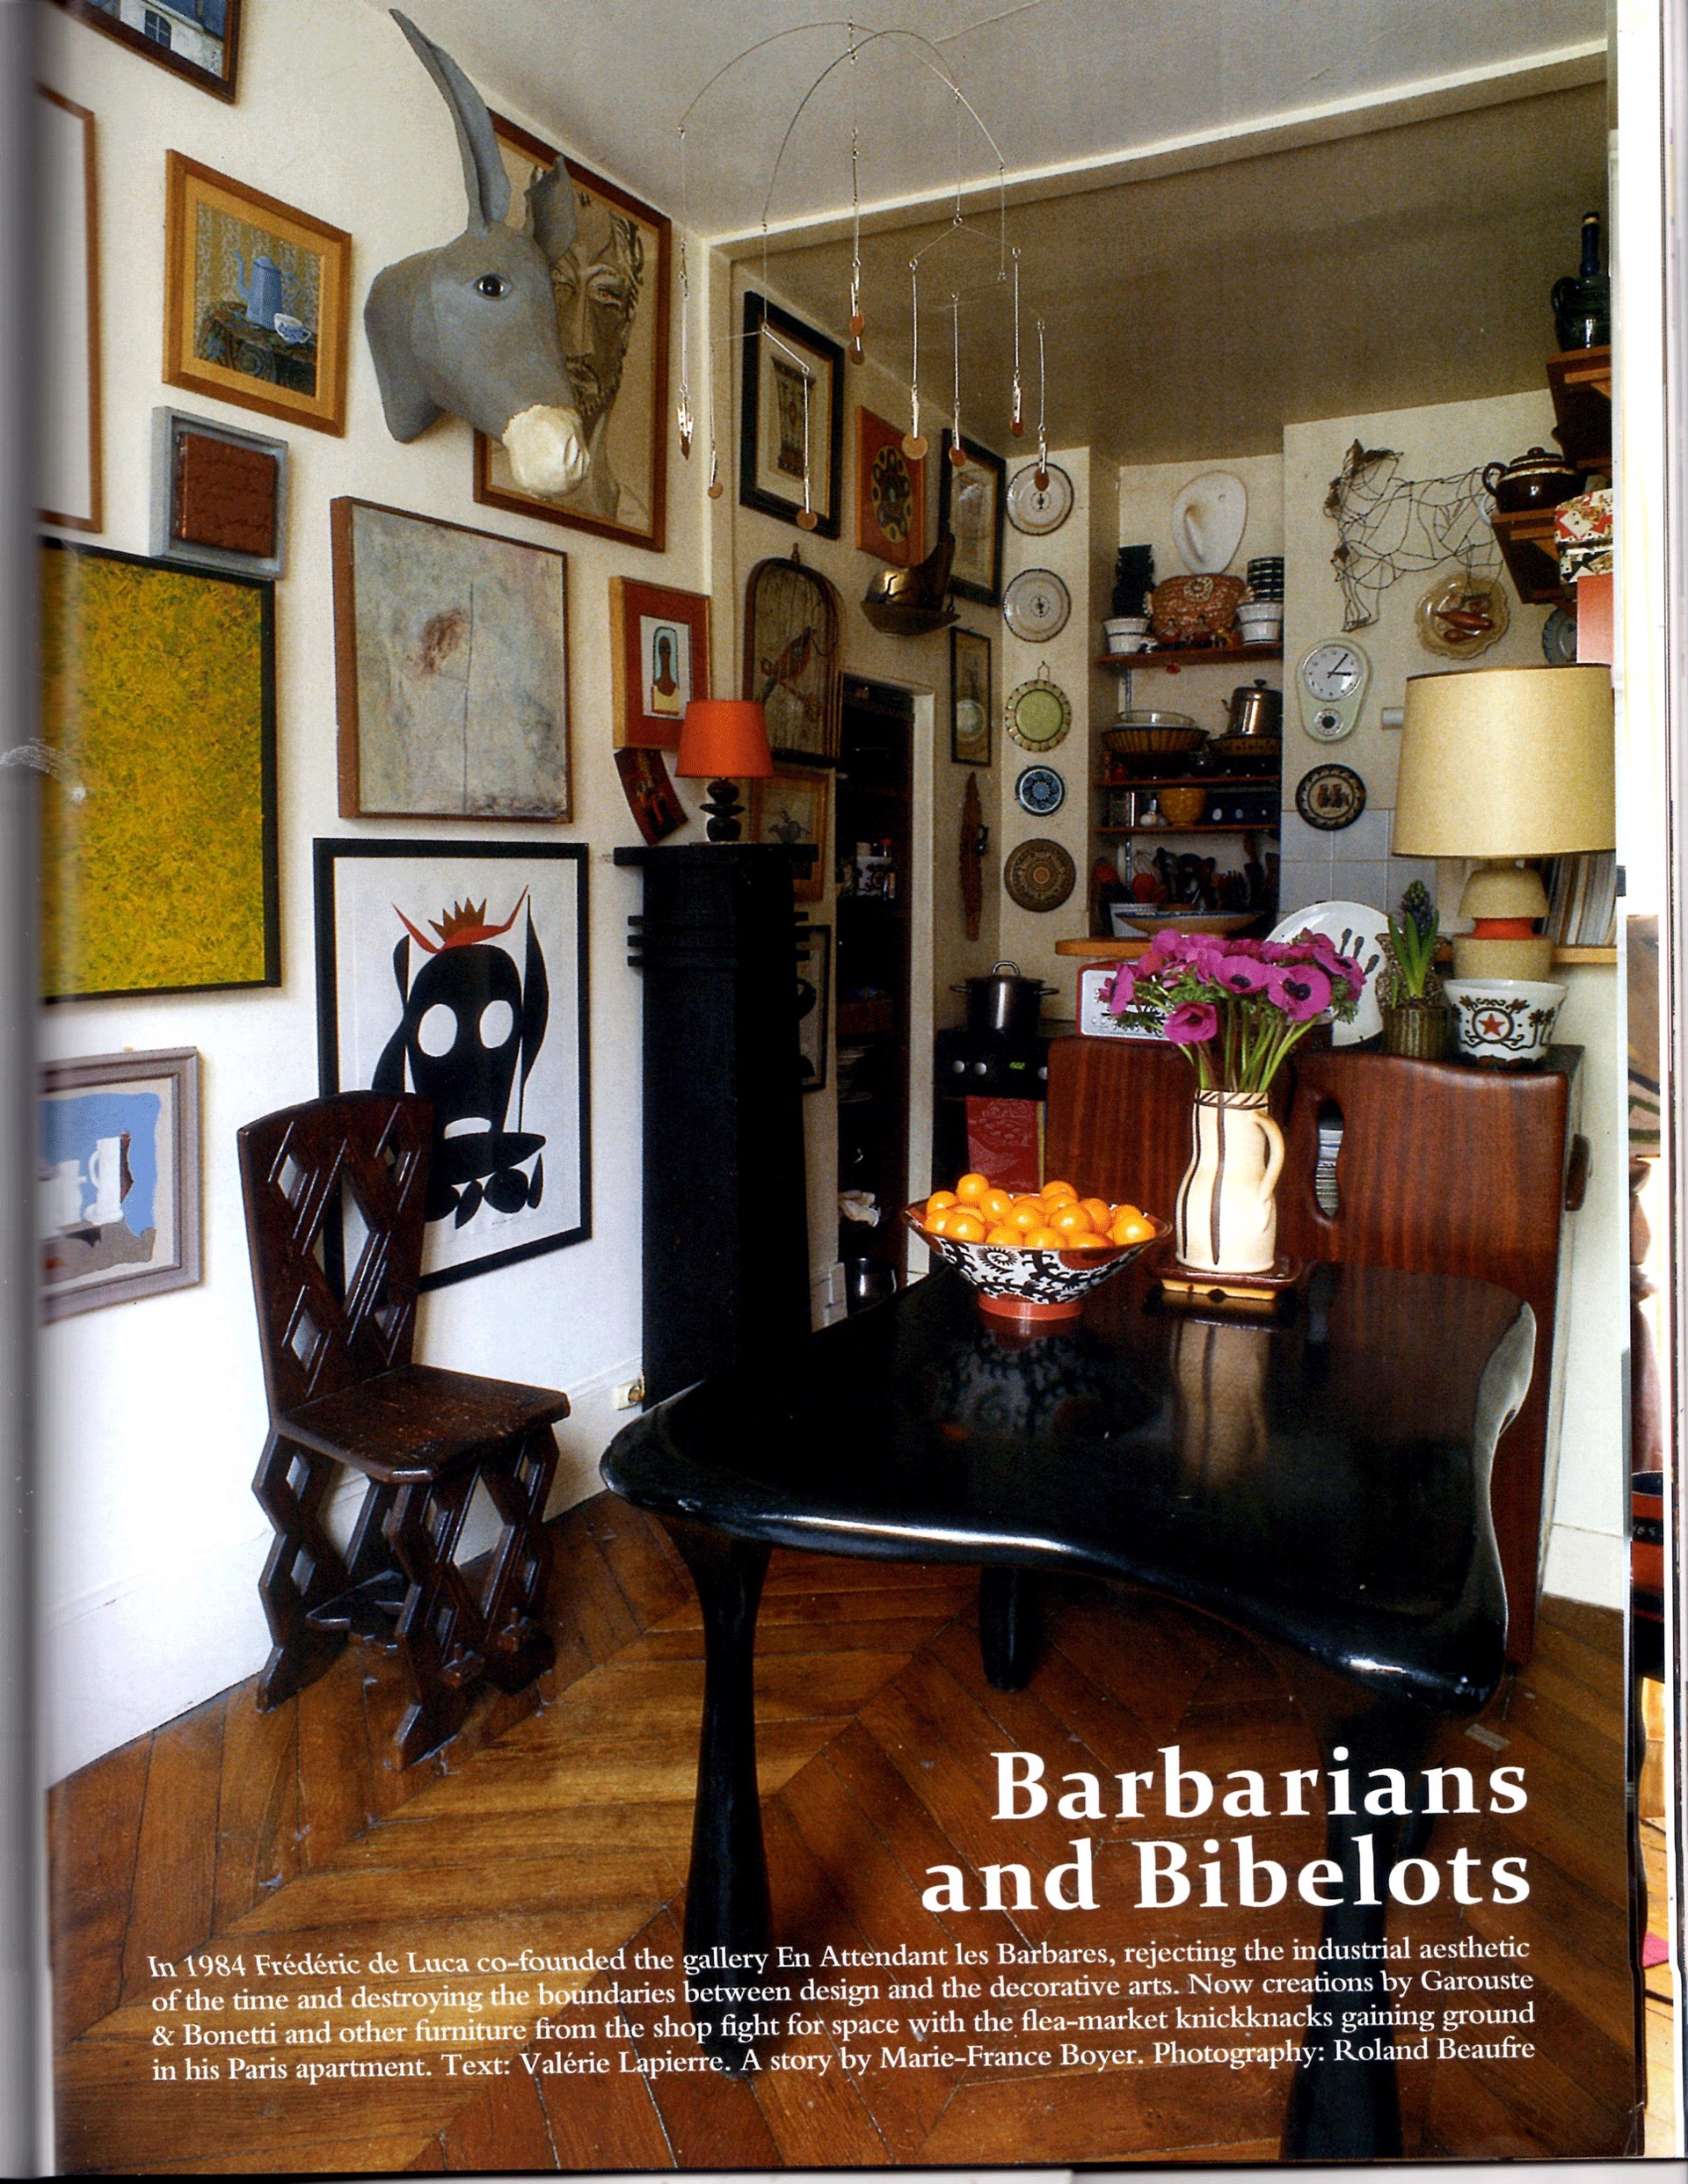 The World of Interiors, September 2011 - Jacques Jarrige